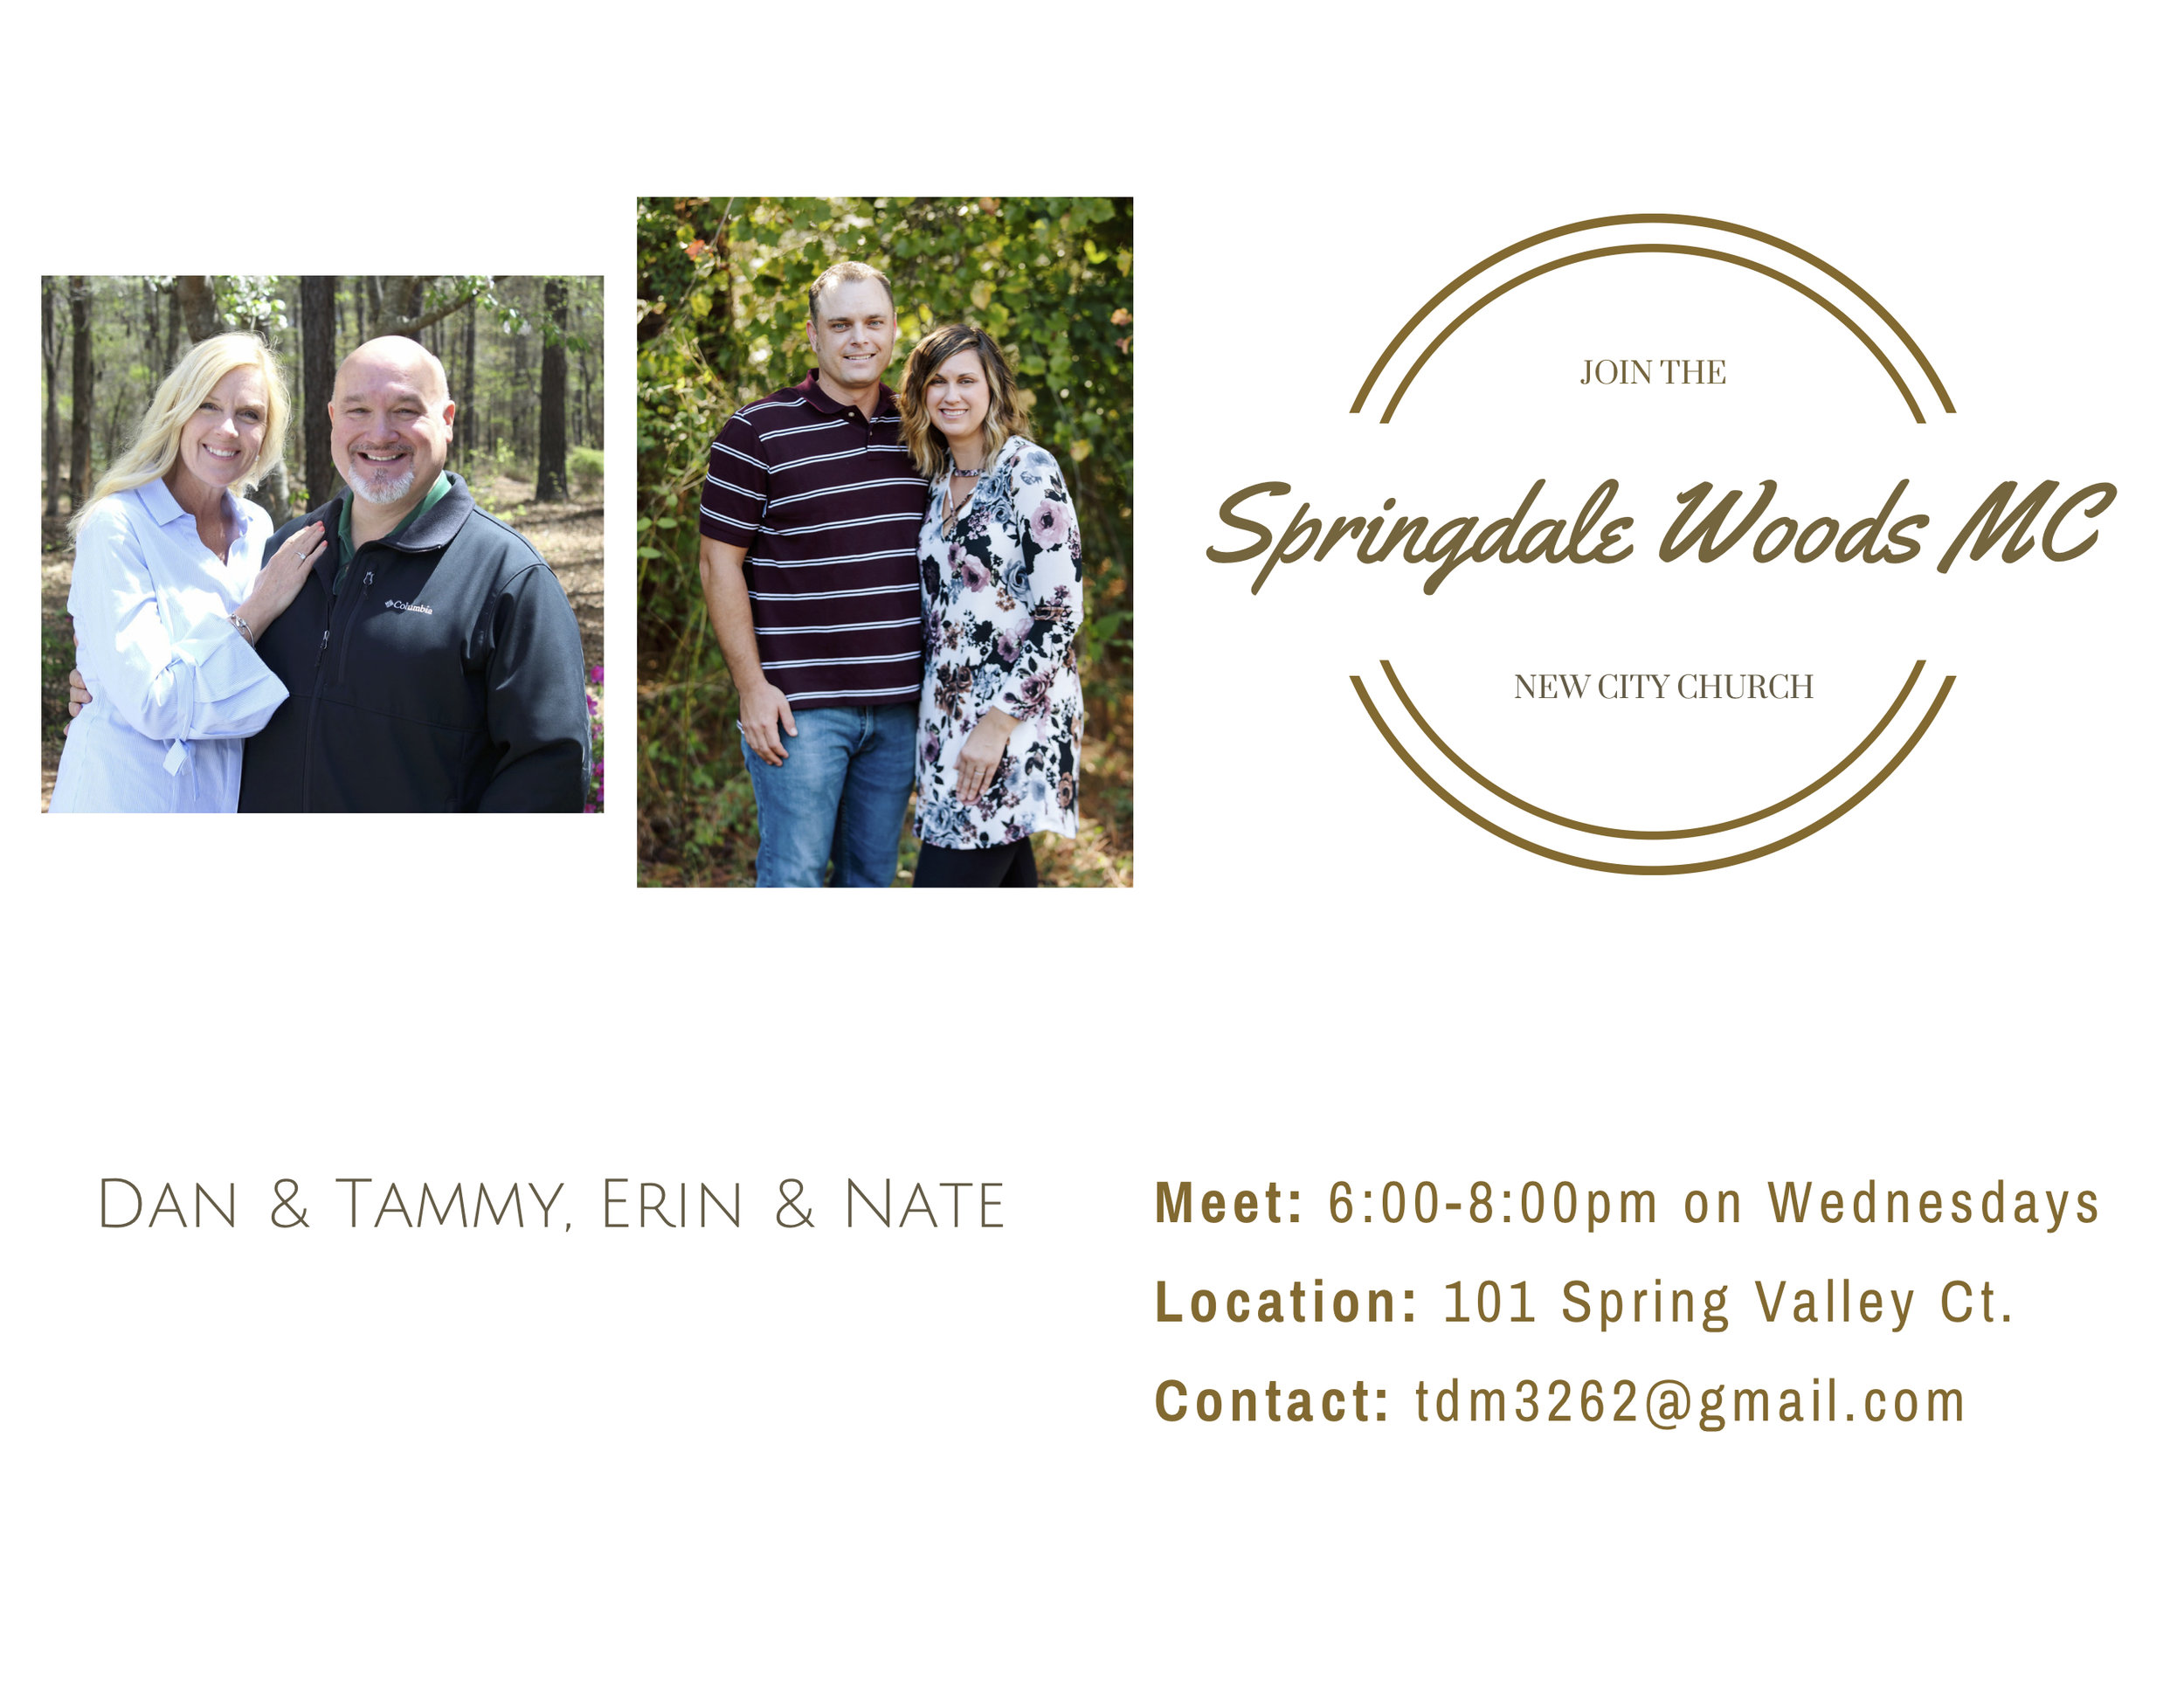 Email the Springdale Woods MC